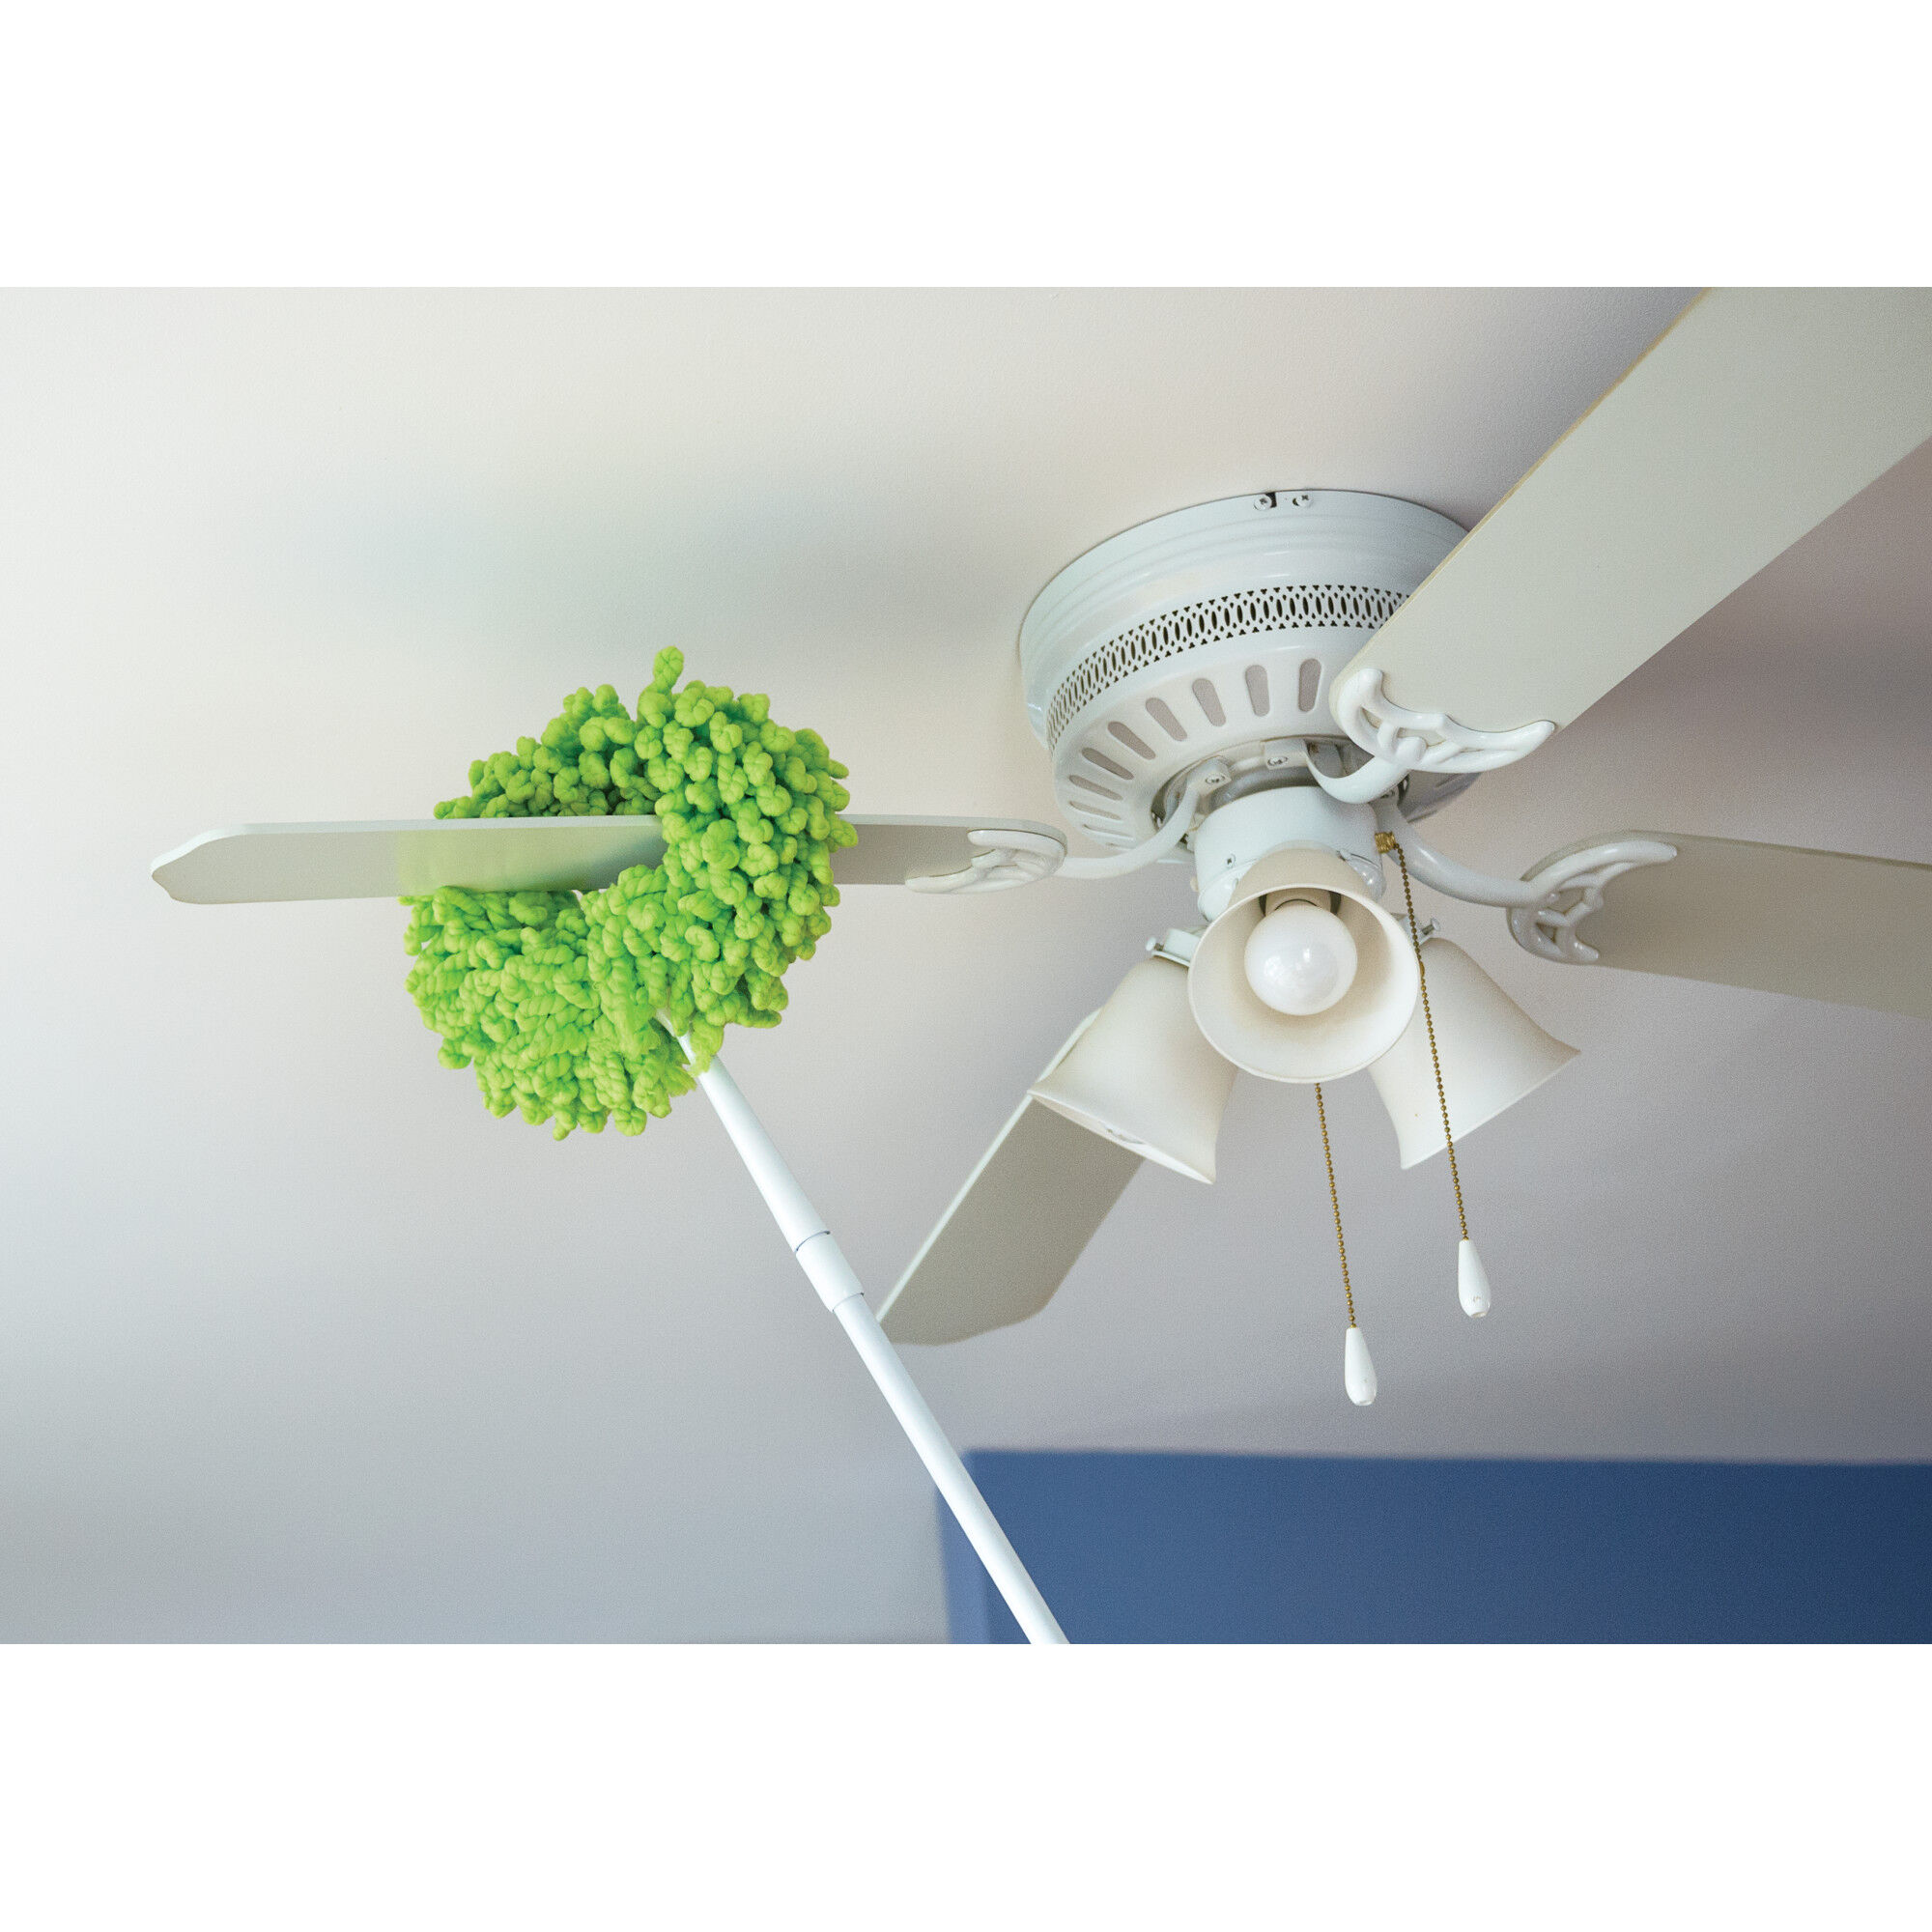 lysol kitchen cleaner stainless steel pendant light microfiber ceiling fan | quickie cleaning tools